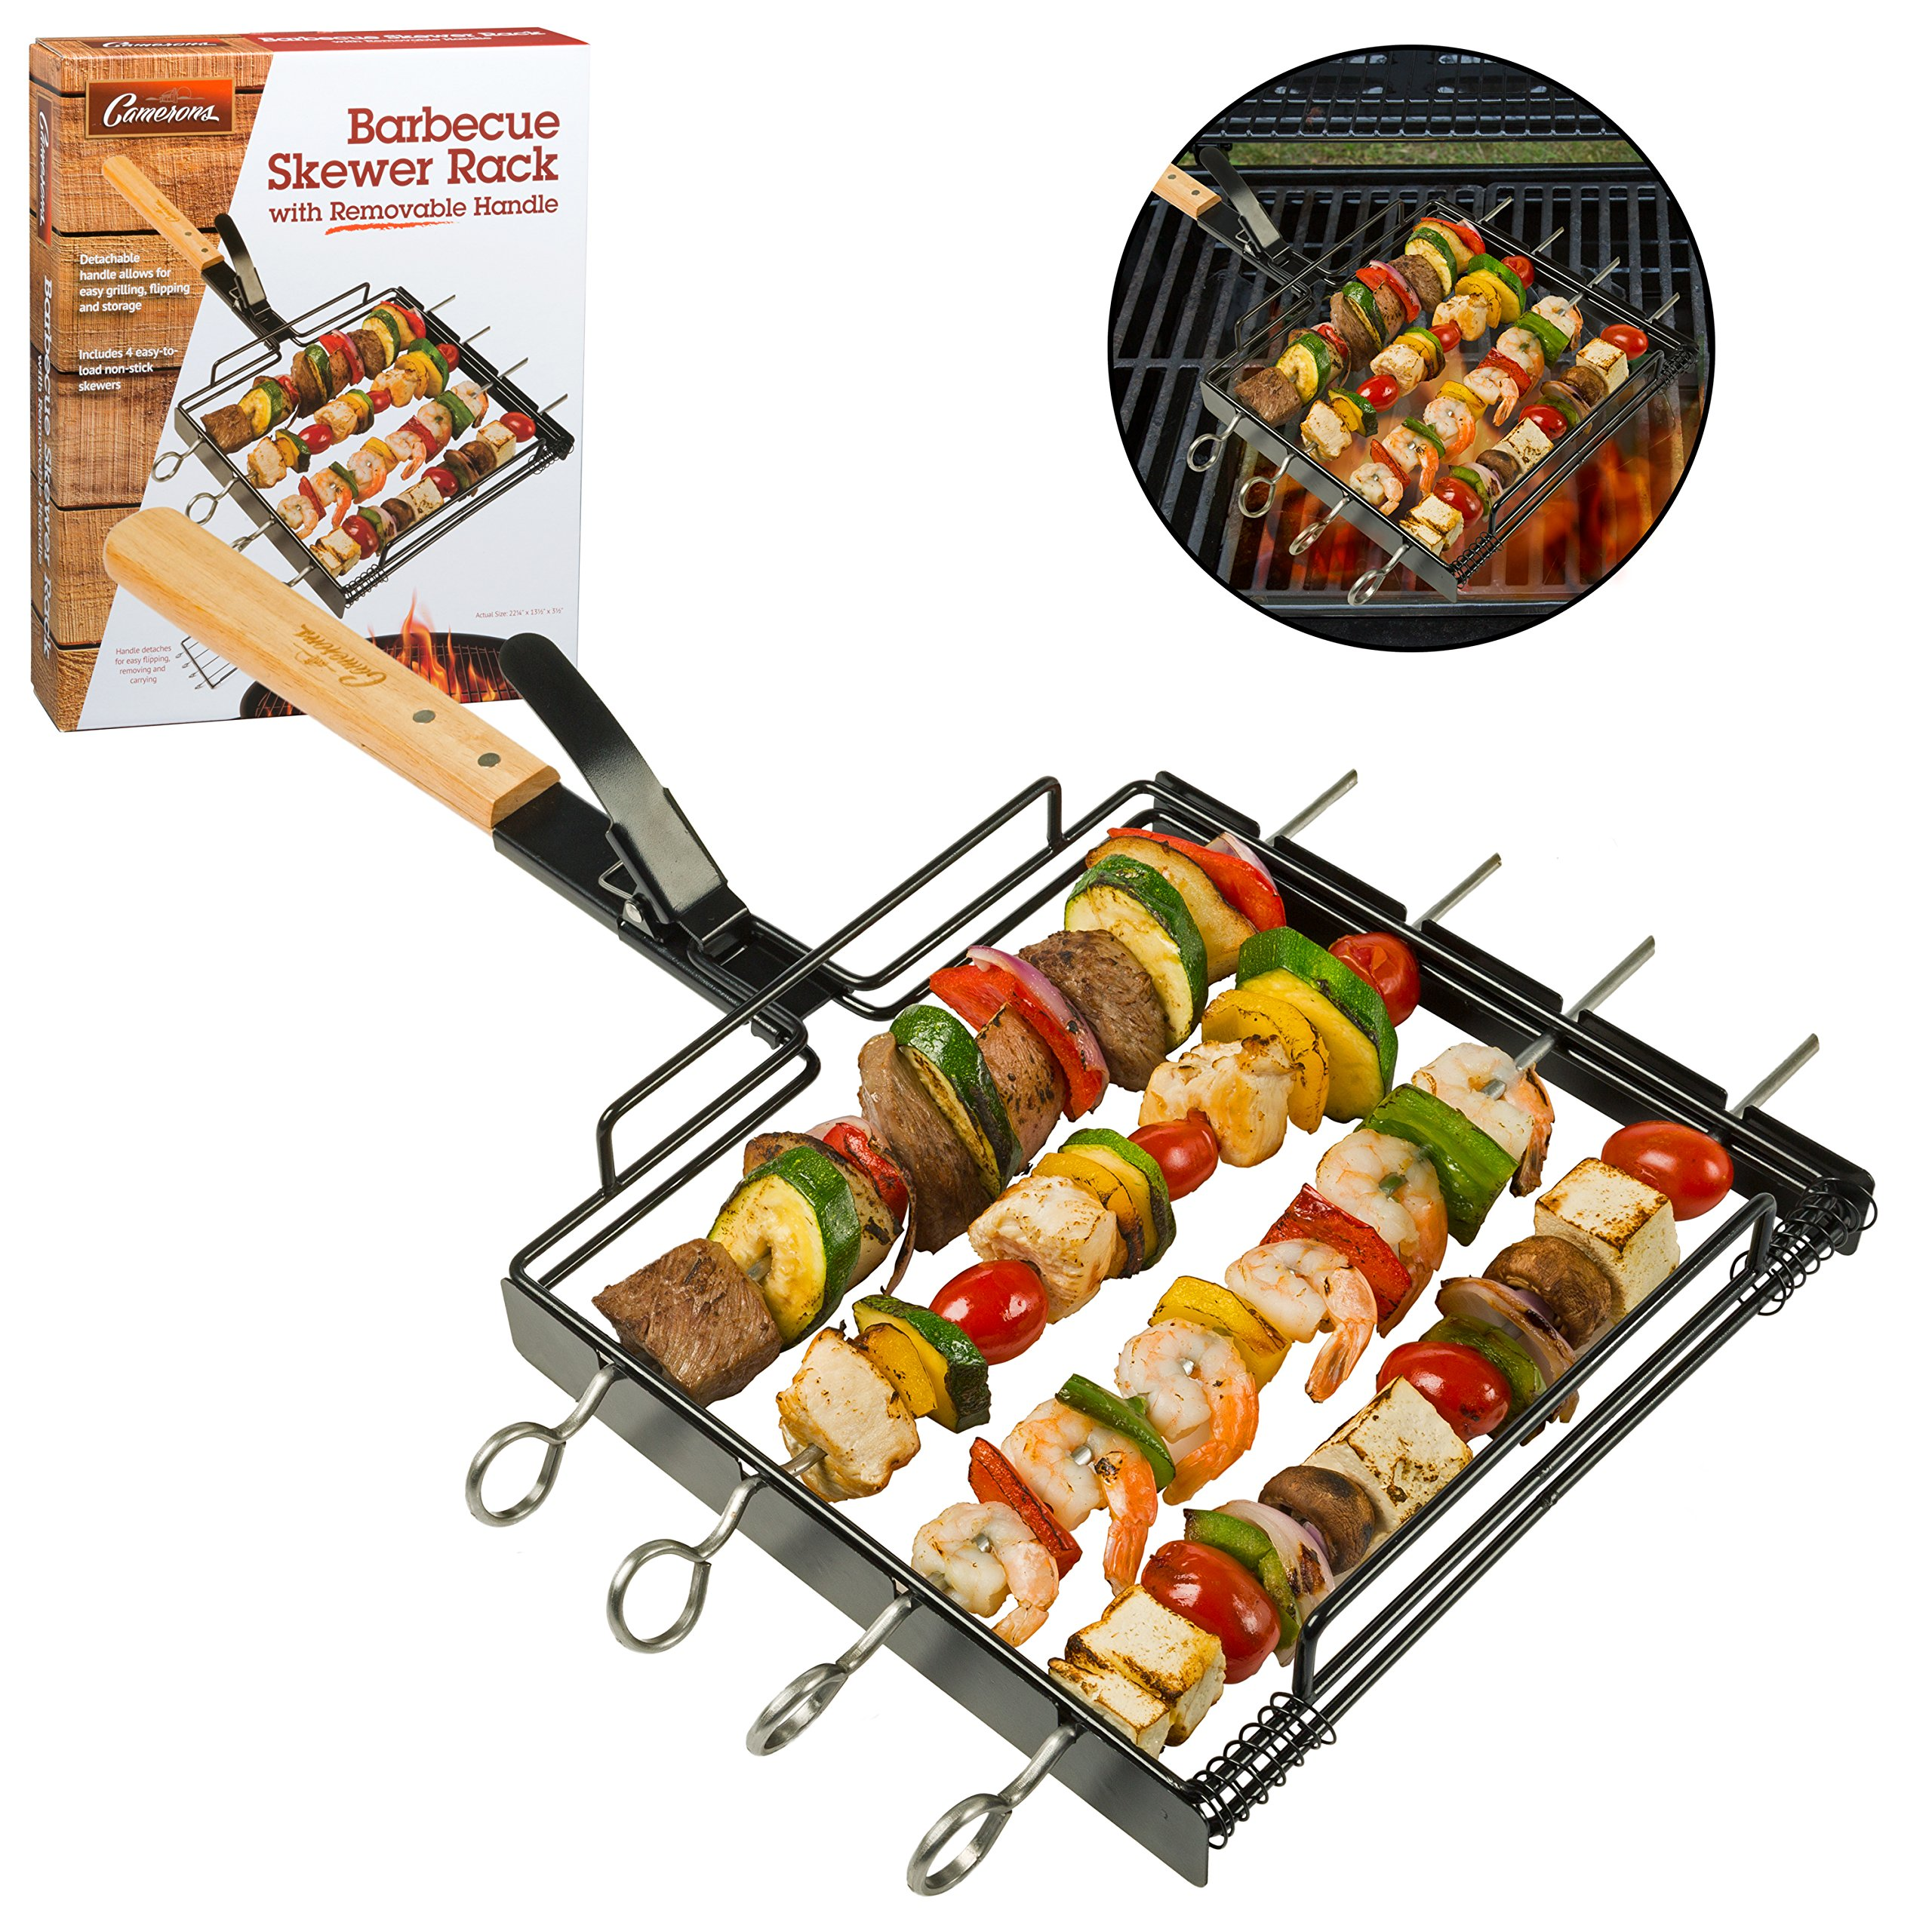 Camerons Products Skewer Rack Set with Removable Handle - Non-Stick Stainless Steel for Grilling Barbecue Shish Kabobs, BBQ Meat, Vegetables, Fruit - (1 Rack, 4 Skewers) by Camerons Products